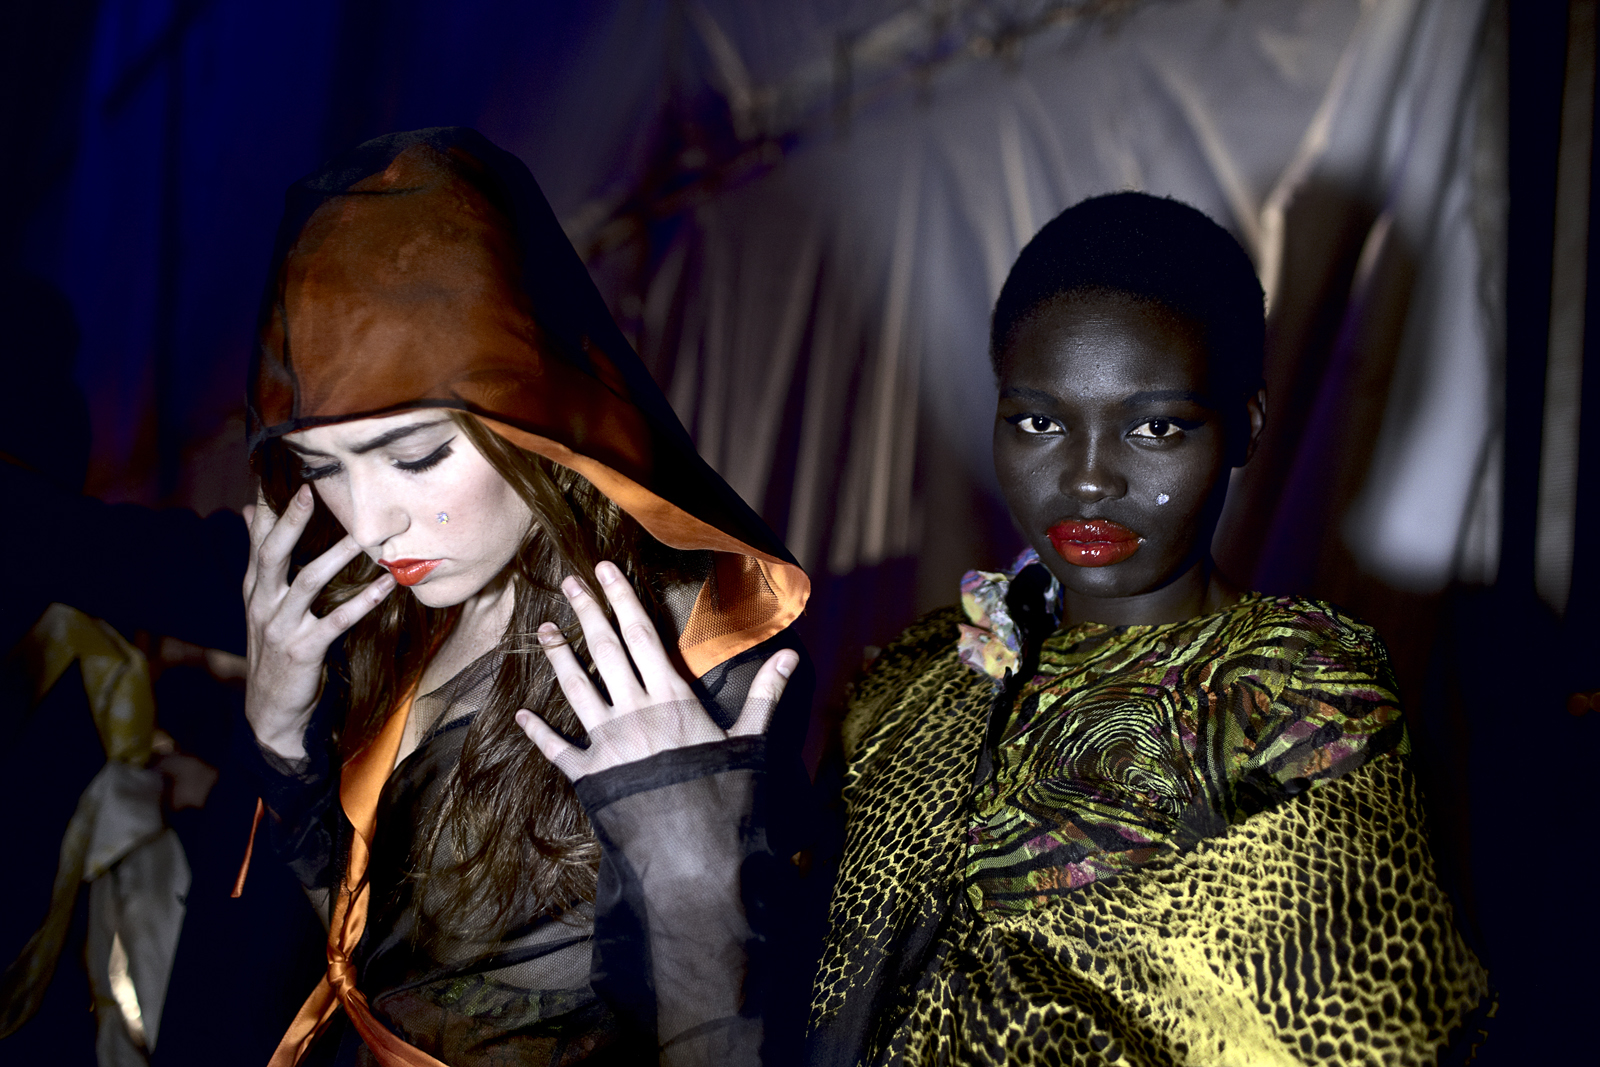 Models wait backstage before a show at Joburg Fashion Week on March 30, 2012, in Johannesburg, South Africa. (Photo by: Per-Anders Pettersson)